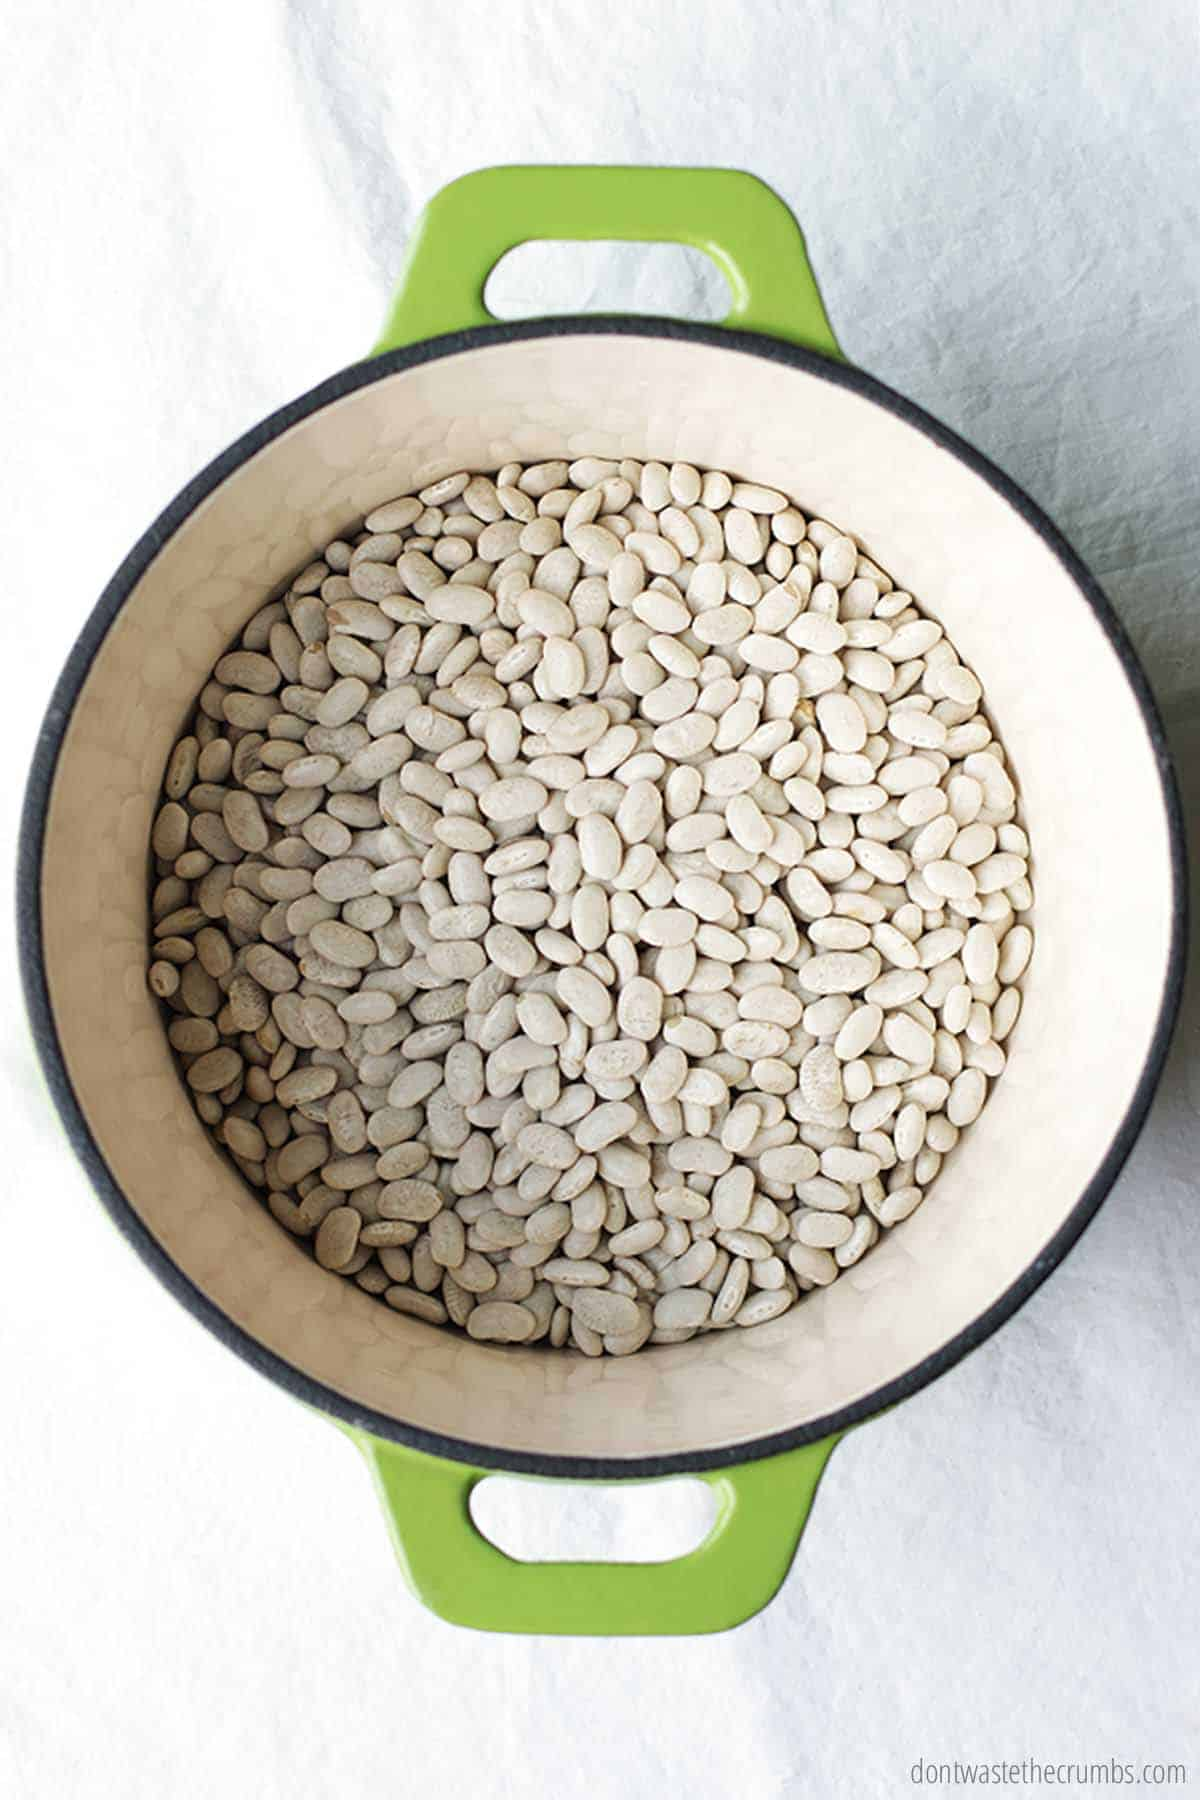 Several cups of dried white beans ready to be soaked inside of a large Dutch oven pot with green handles.